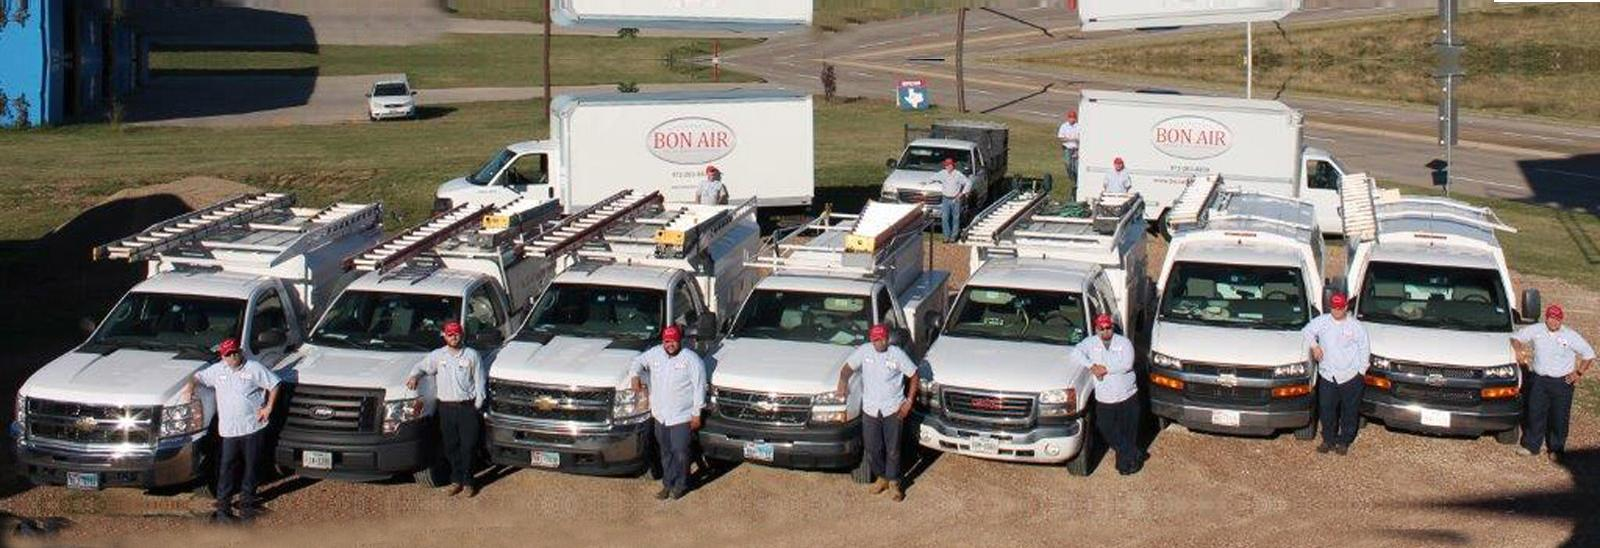 bon-air-services-grand-prairie-tx